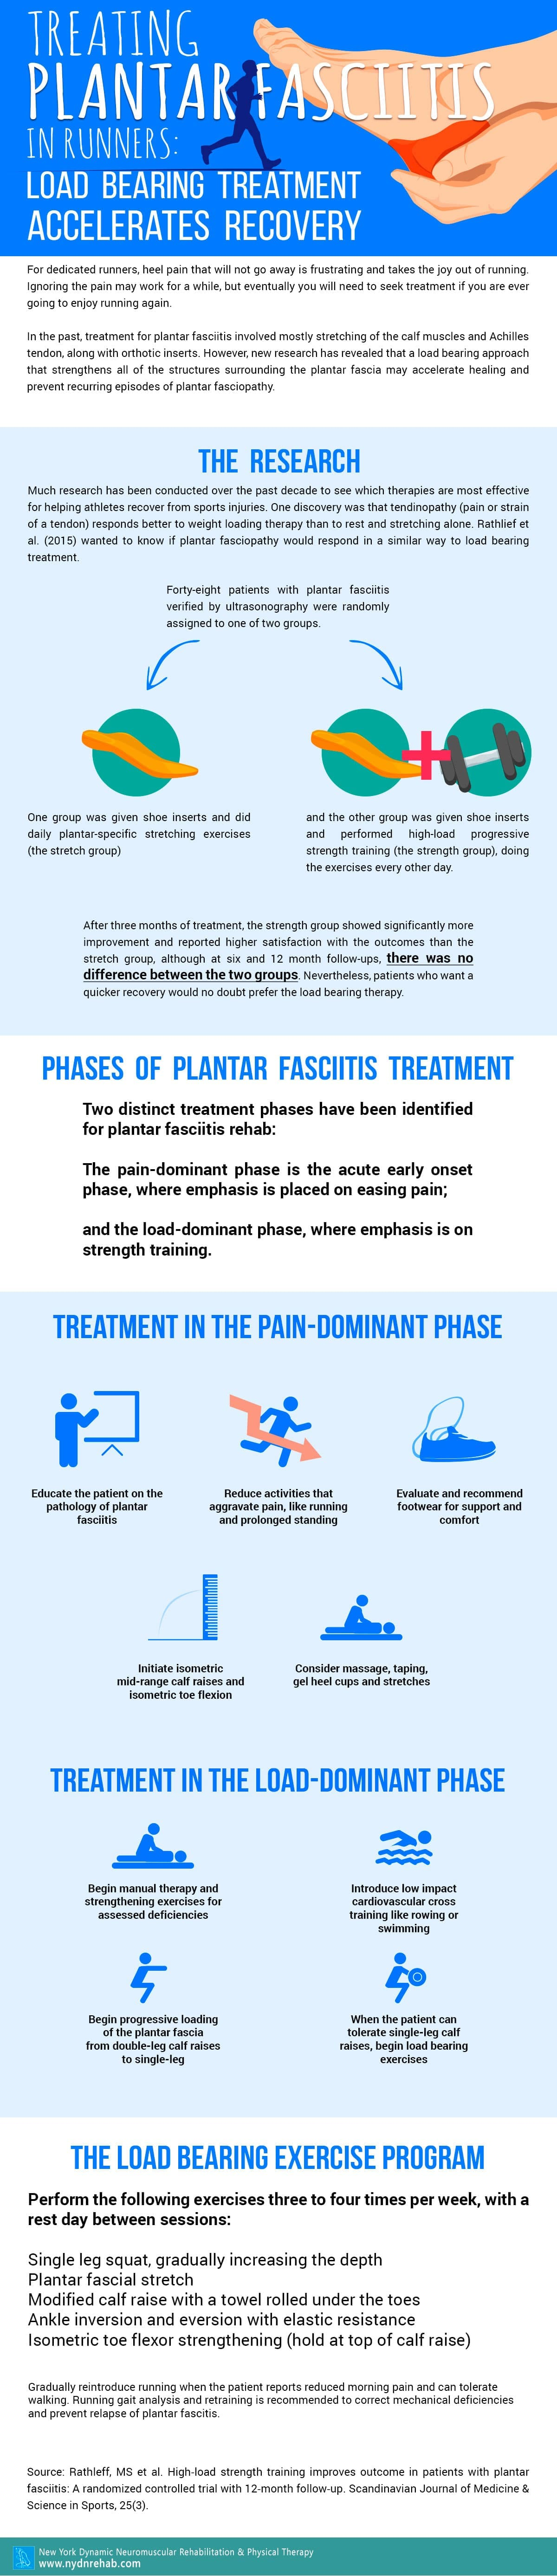 Treating Plantar Fascitis in Runners